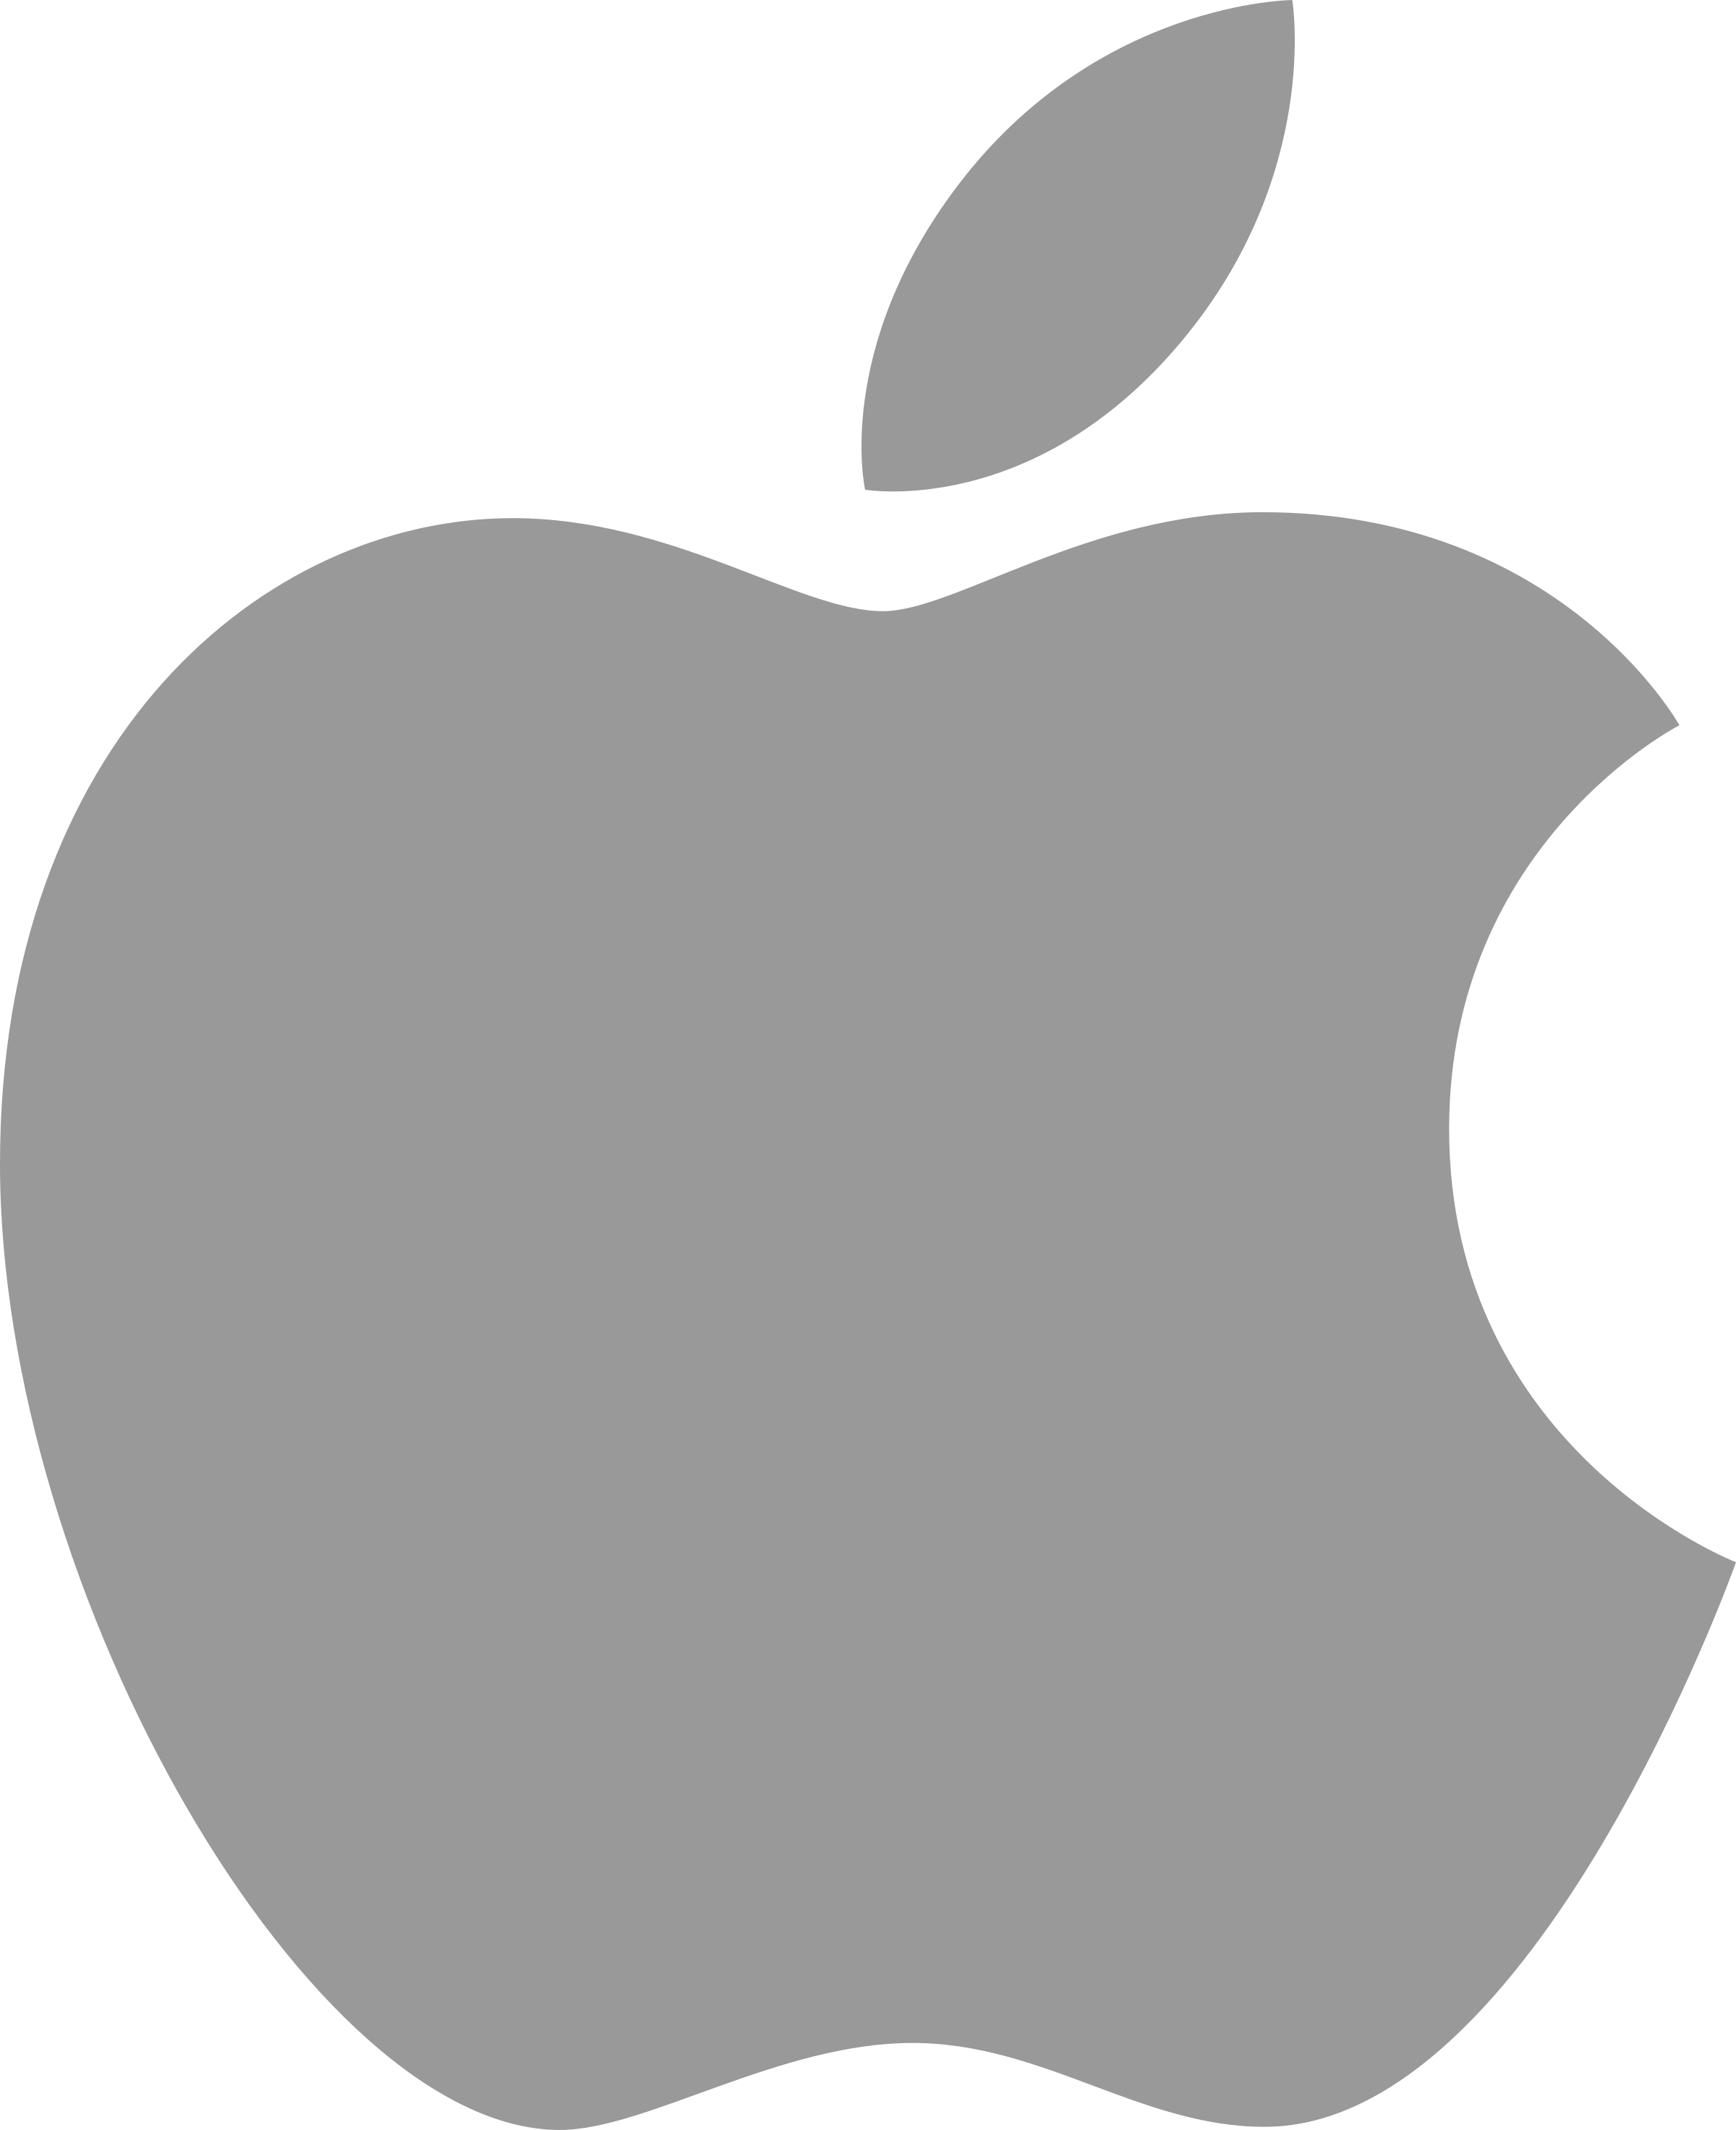 Apple Logo PNG Transparent & SVG Vector.